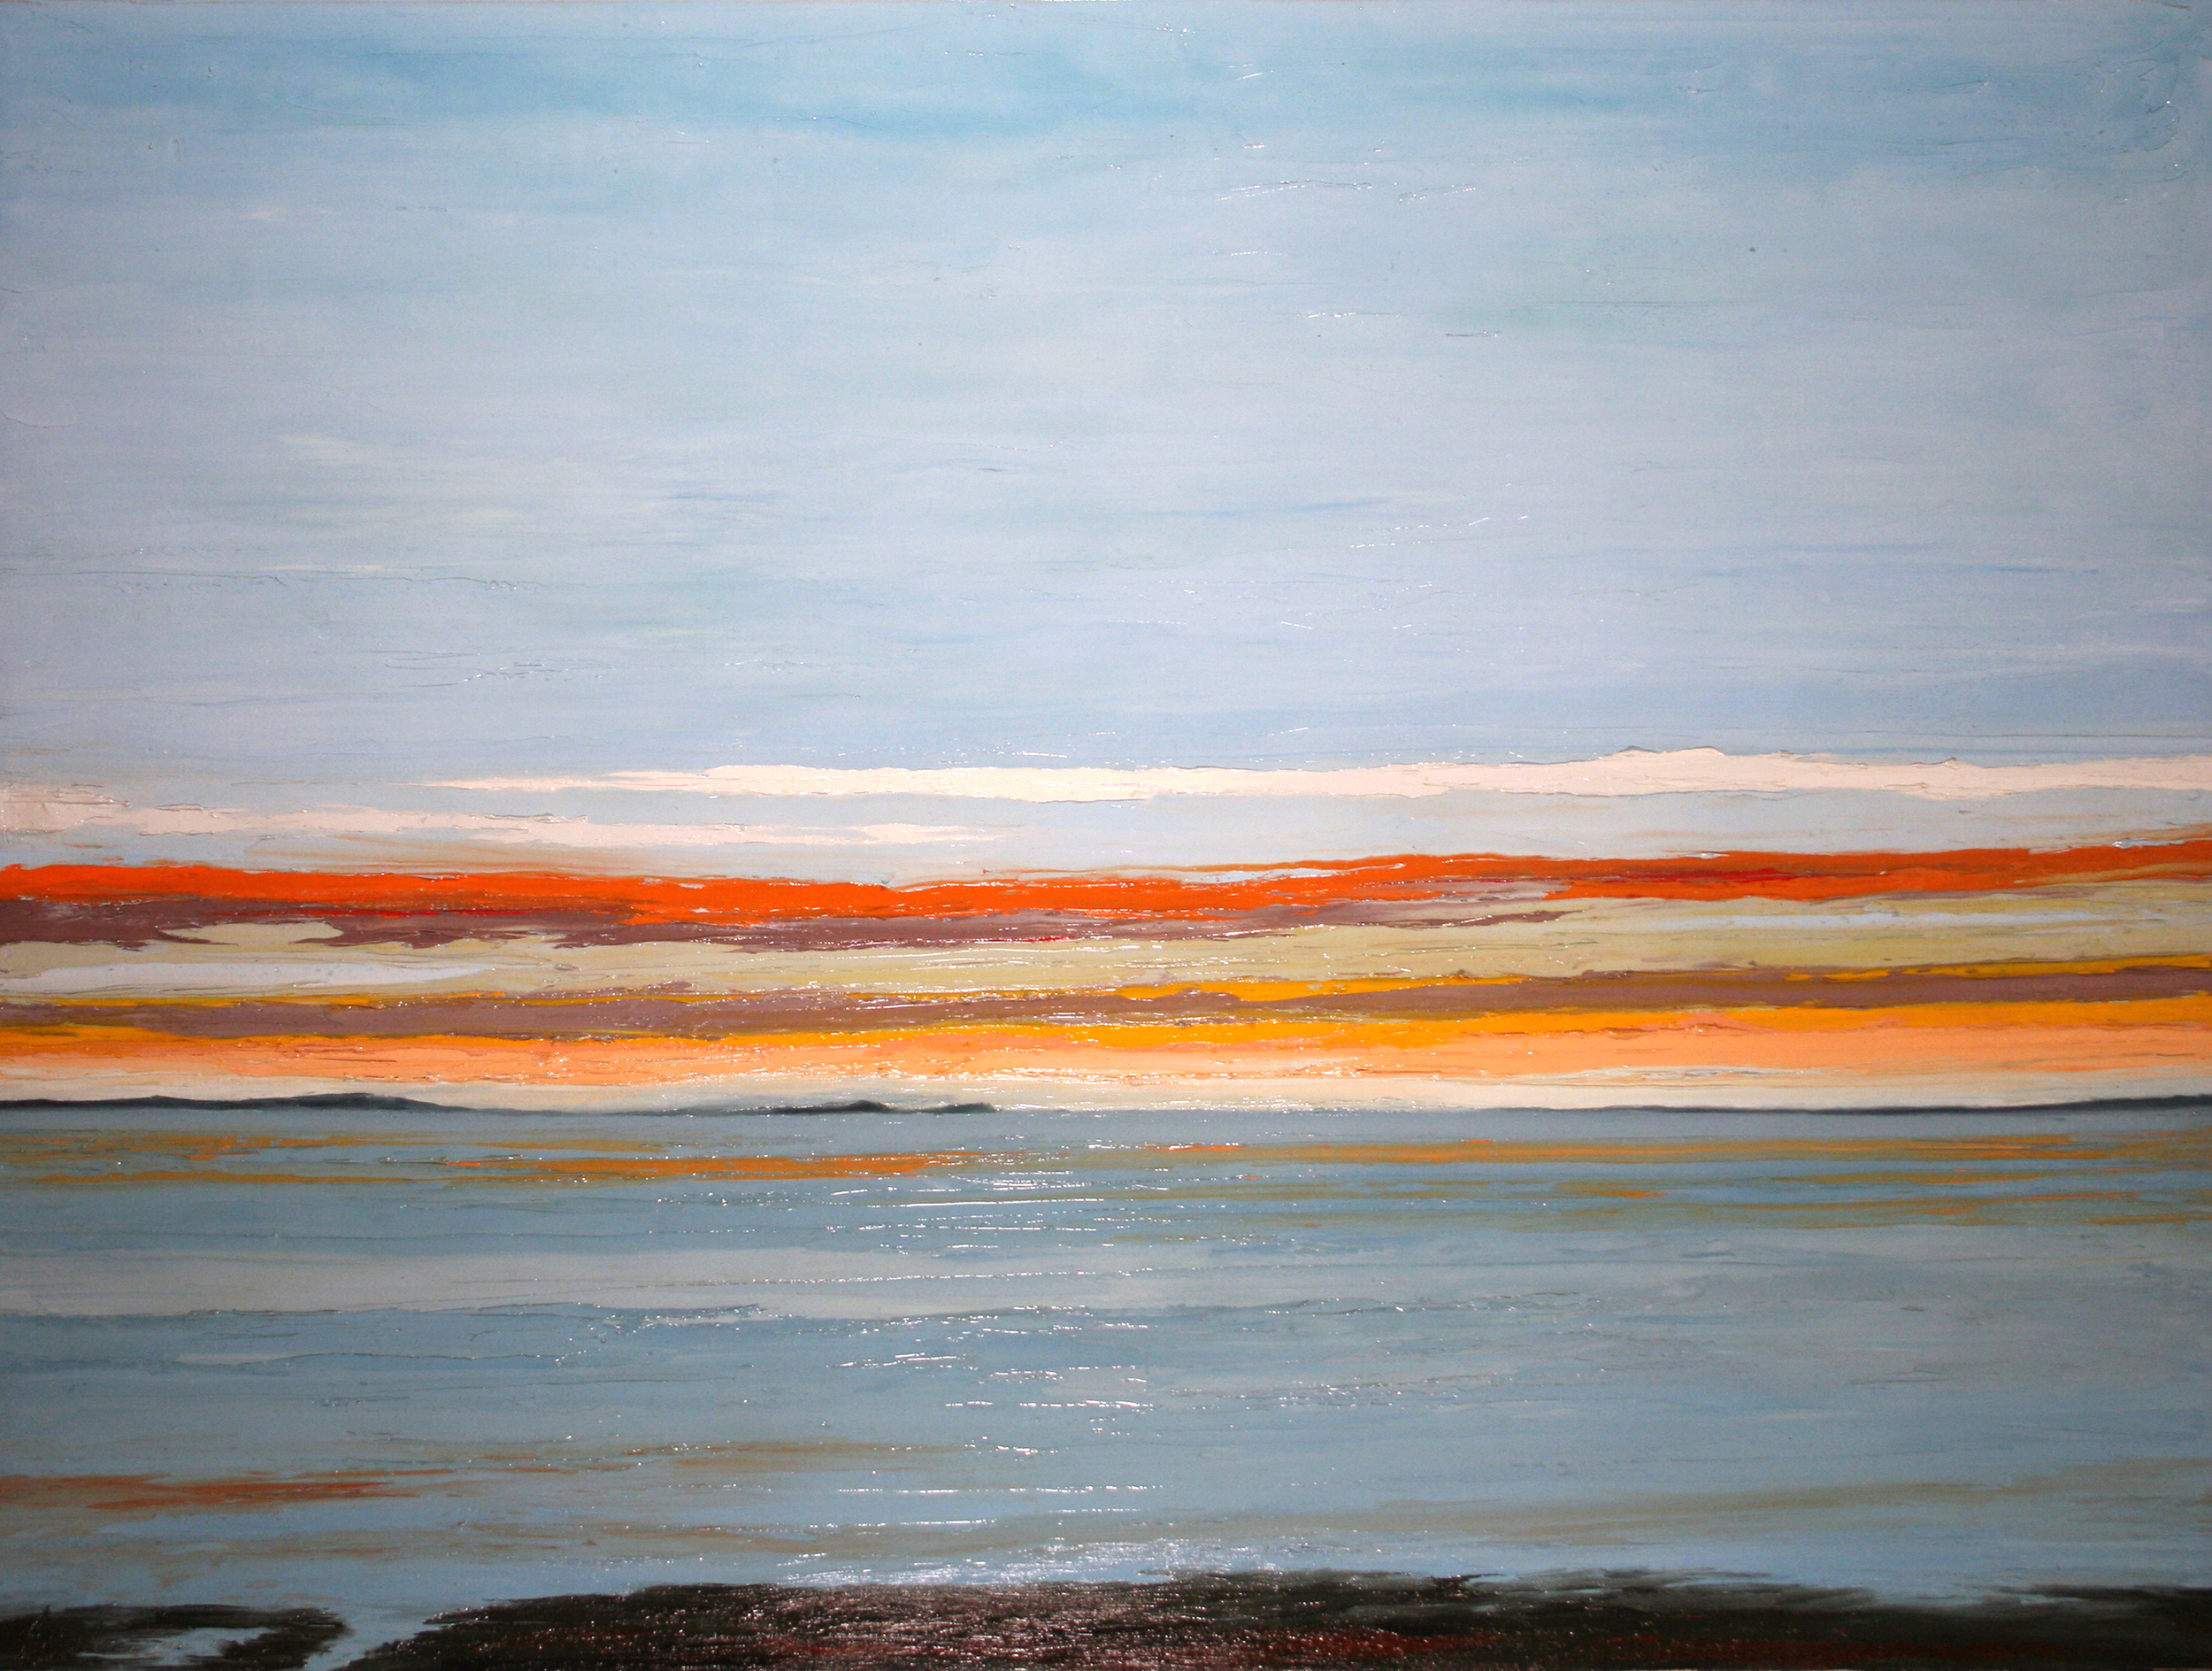 At The Horizon - Cuhna View Plymouth MA, oil on canvas, 36 by 48 inches, 2014 (commission/sold)